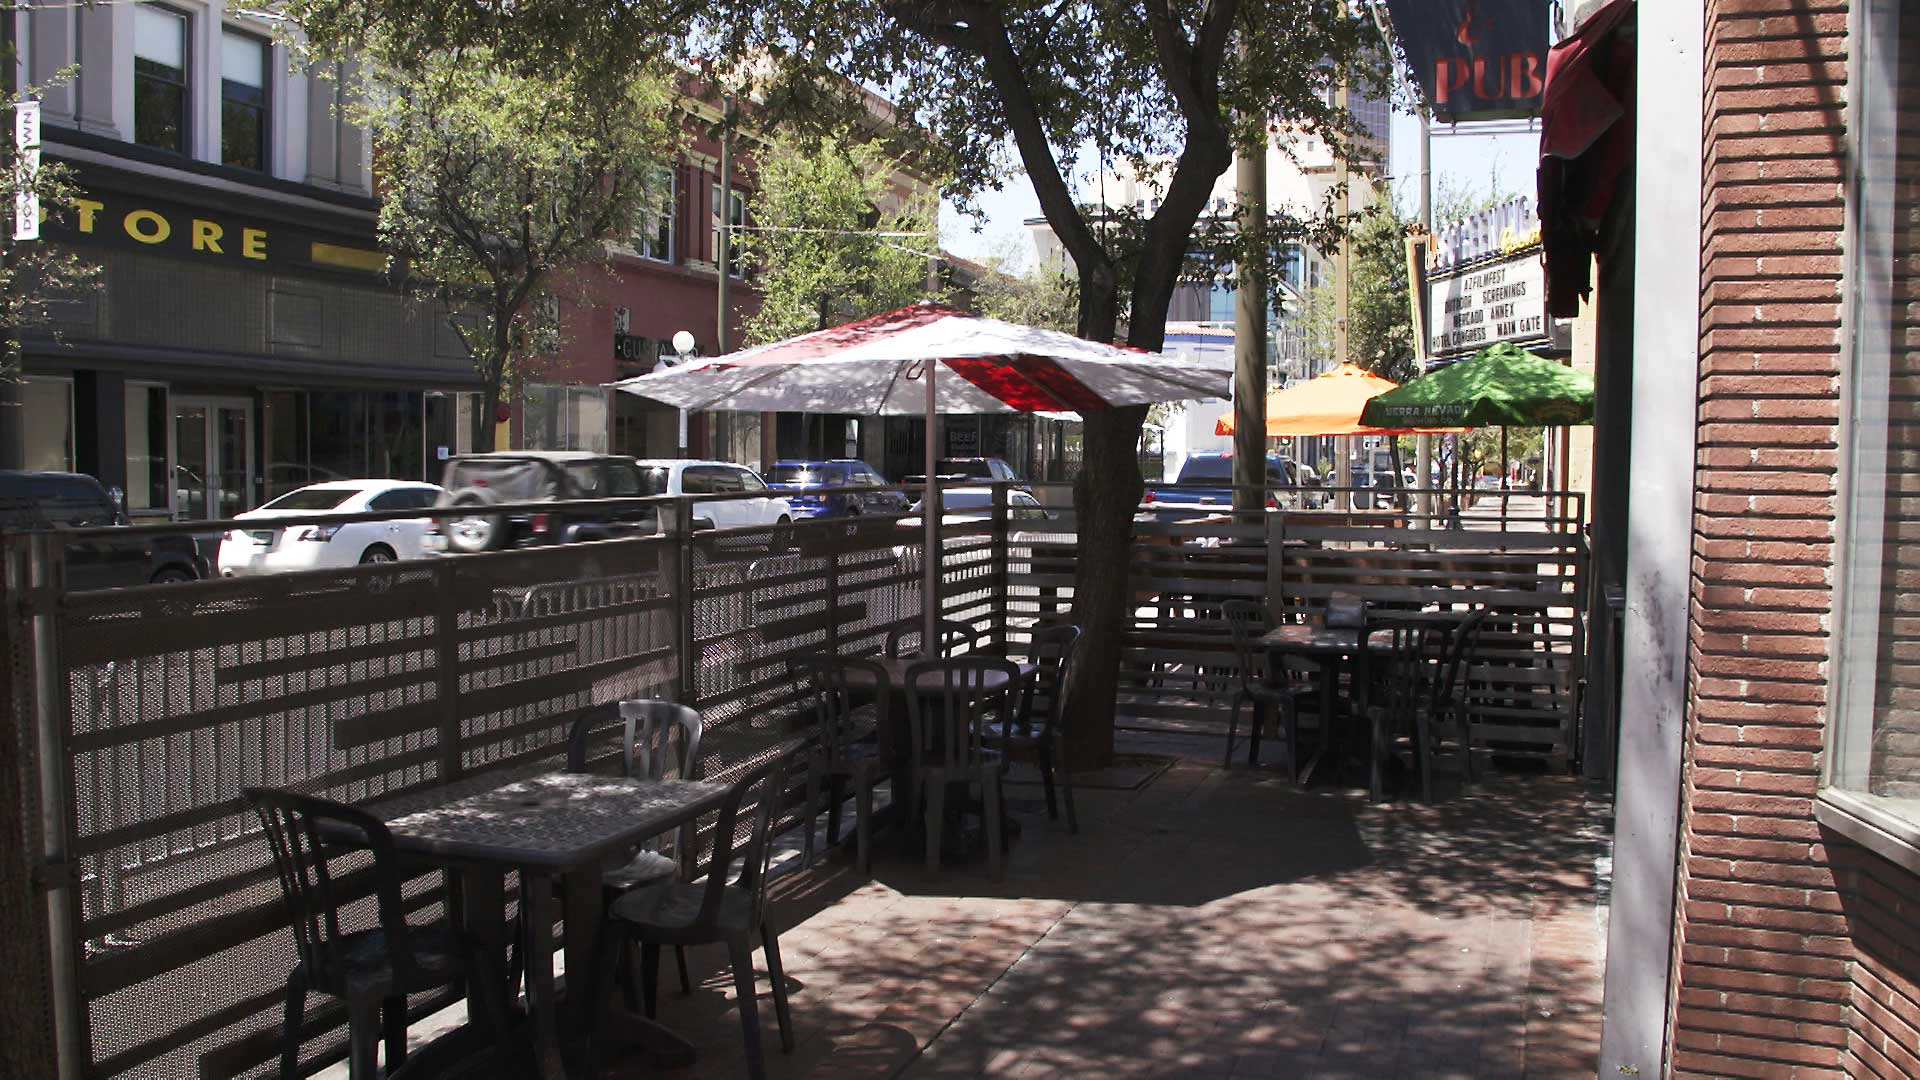 A patio outside Elliott's on Congress in downtown Tucson that was recently constructed to offer patrons outdoor dining options amid concerns about the spread of COVID-19. June 2021.